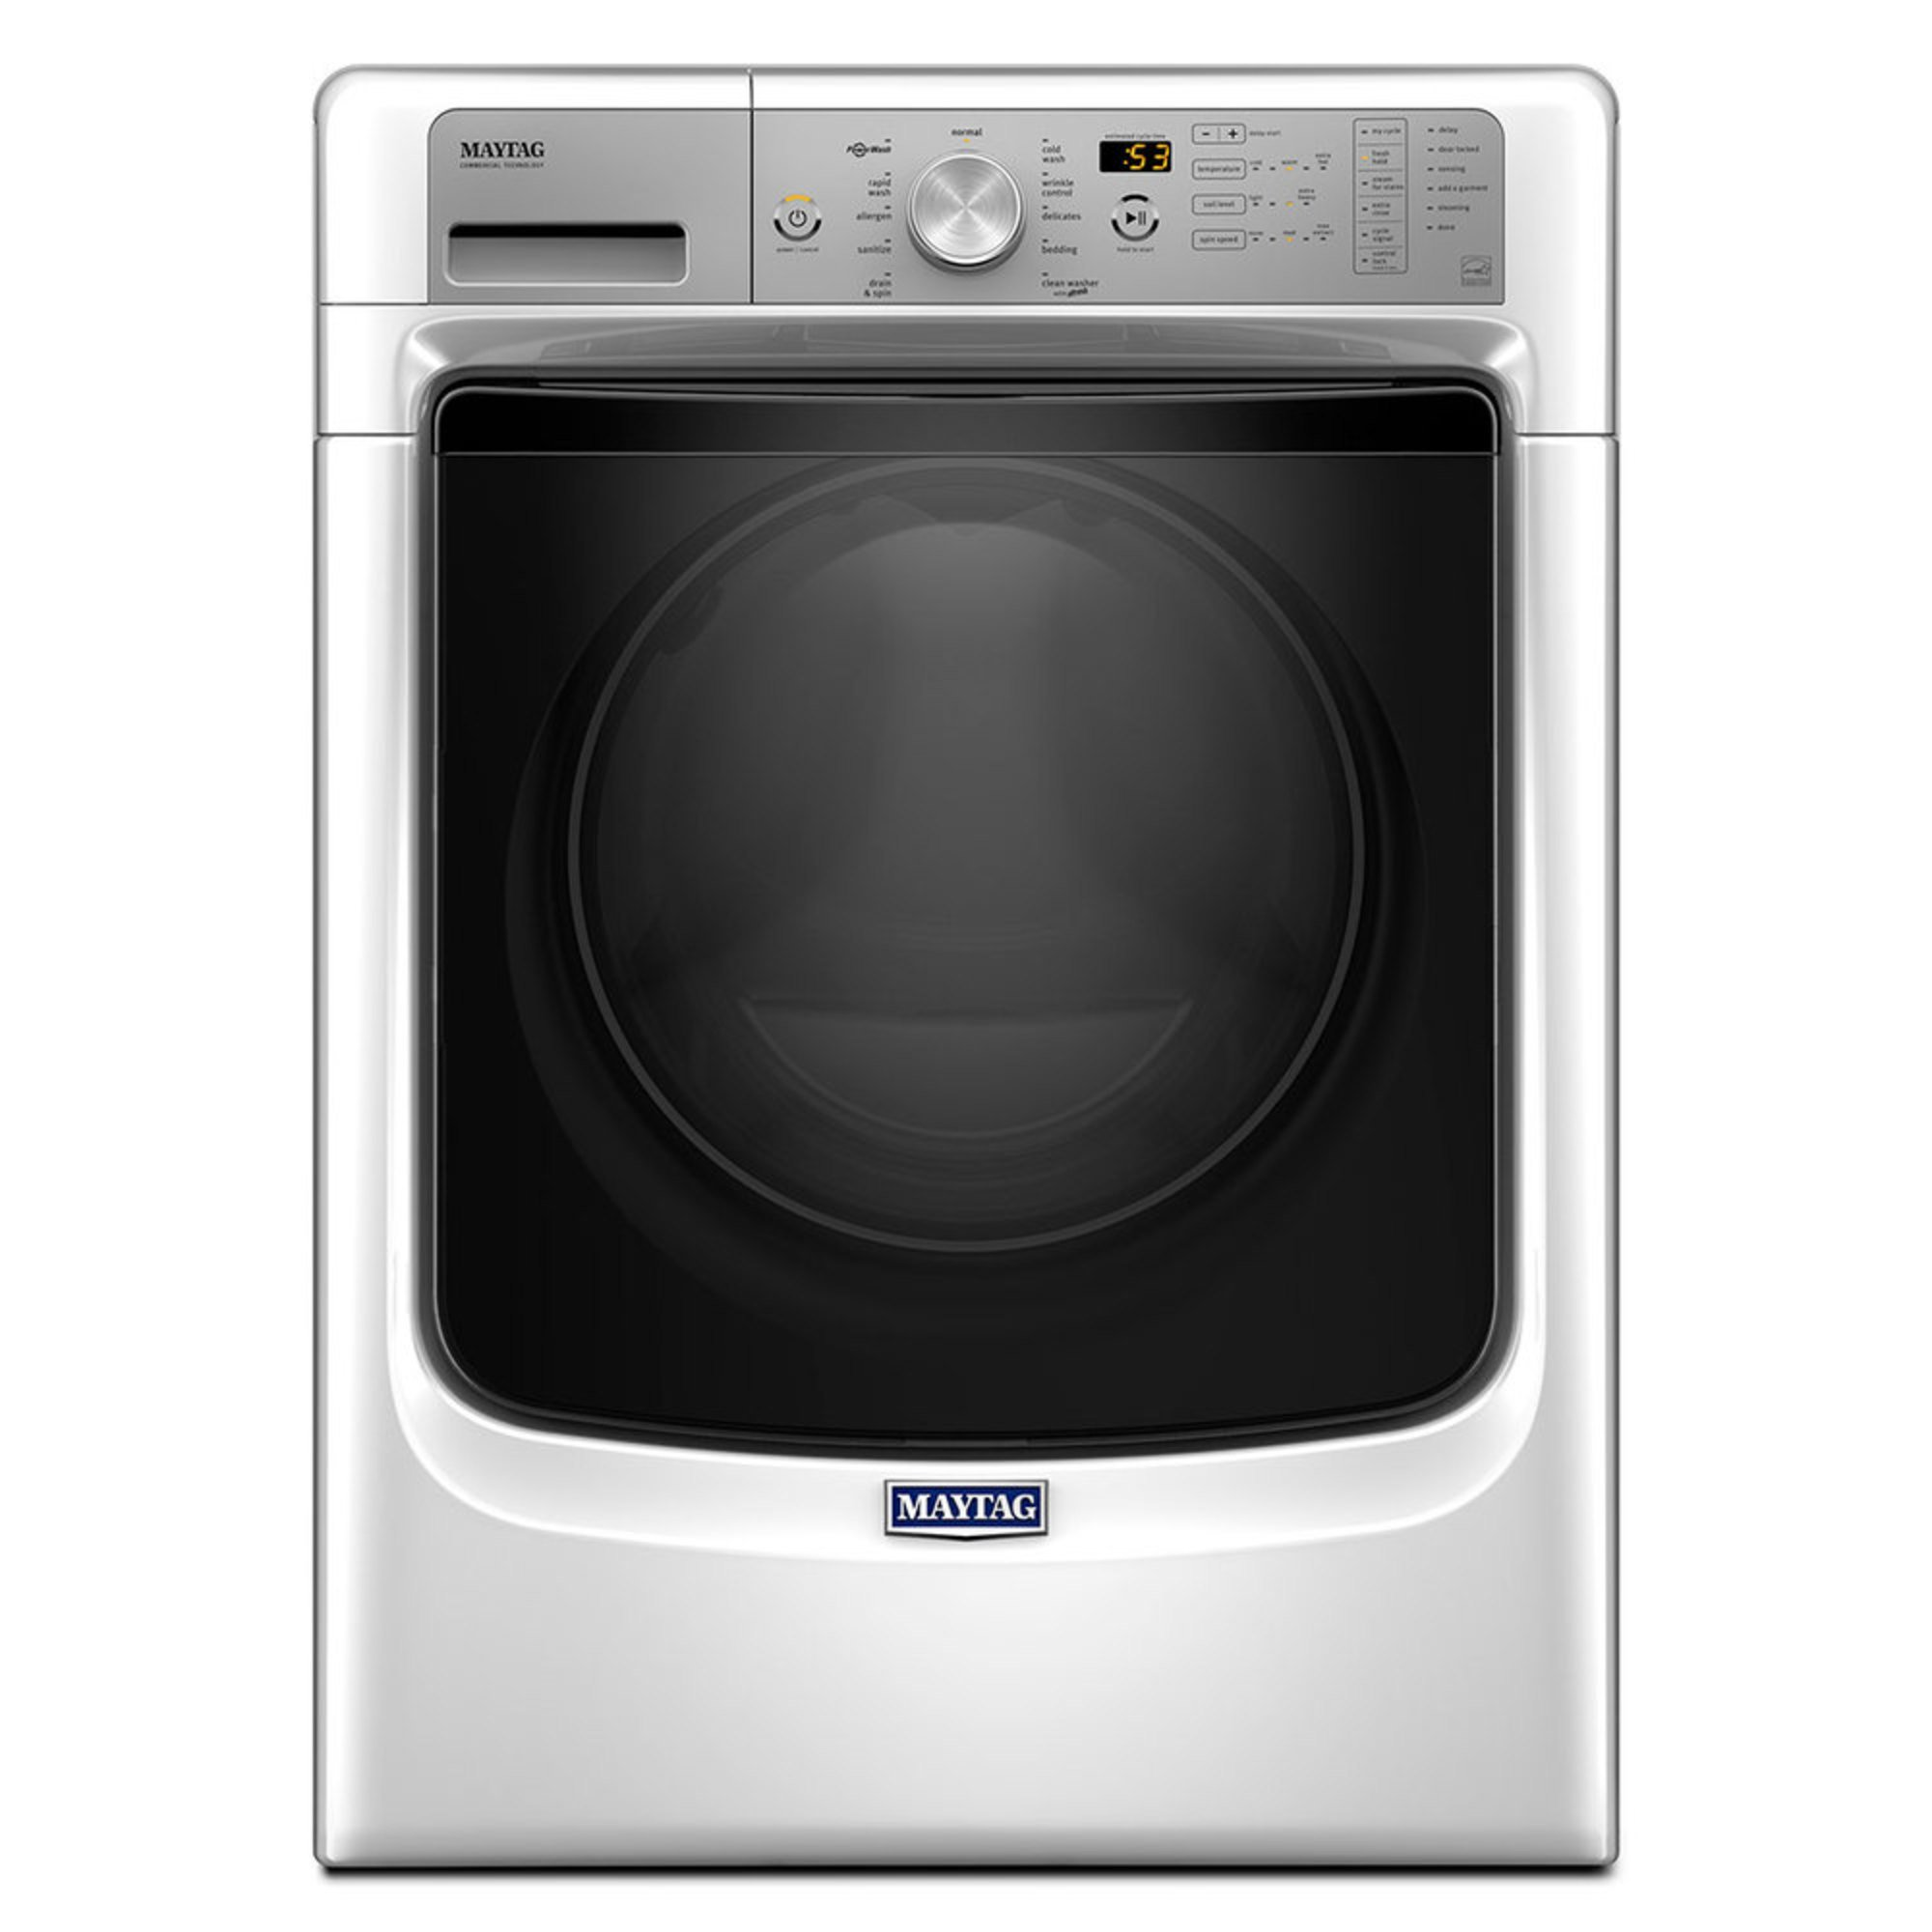 Maytag 45 Cuft Front Load Washer W Fresh Hold White Mhw5500fw Garbage Disposal Plumbing Also Lg Slide In Range On Wiring 0